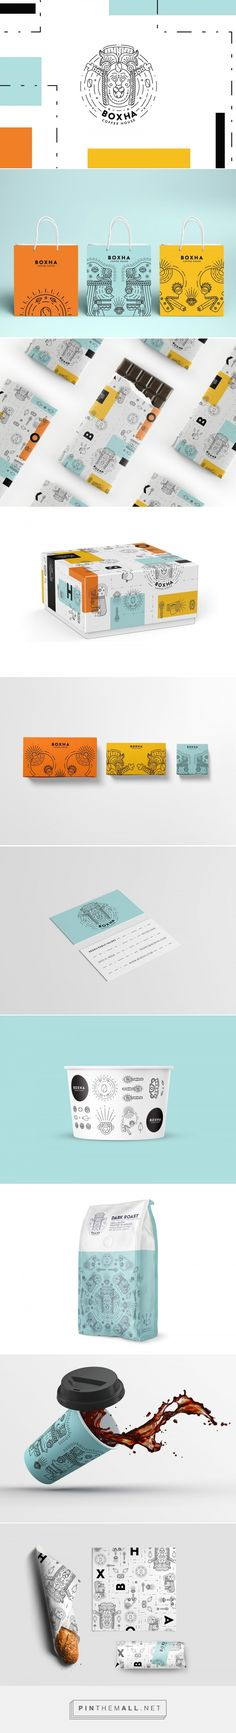 Boxha Coffee House packaging design by Eme Design Studio - https://www.packagingoftheworld.com/2018/04/boxha-coffee-house.html